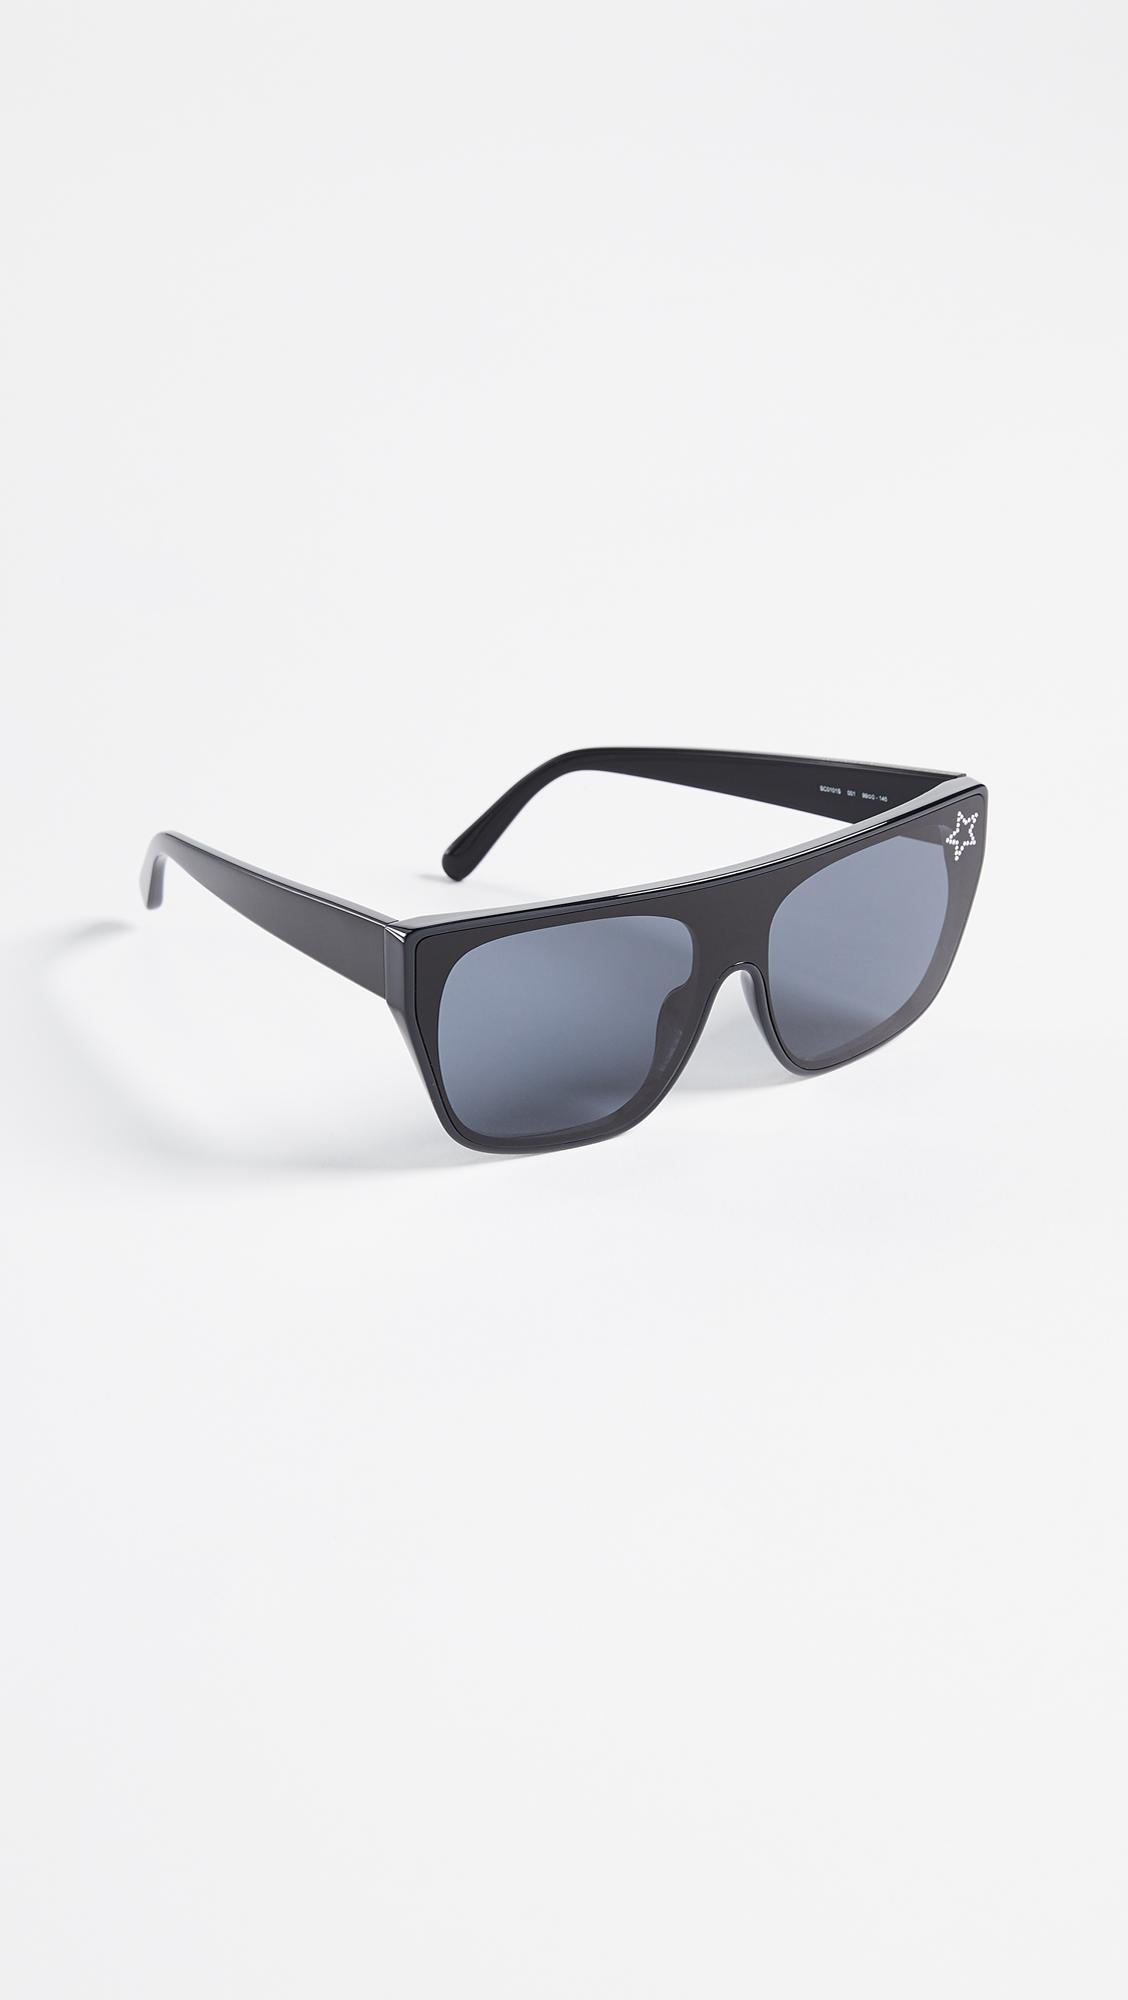 4c8a7a5586 Lyst - Stella McCartney Rectangular Sunglasses With A Masked Lens in ...